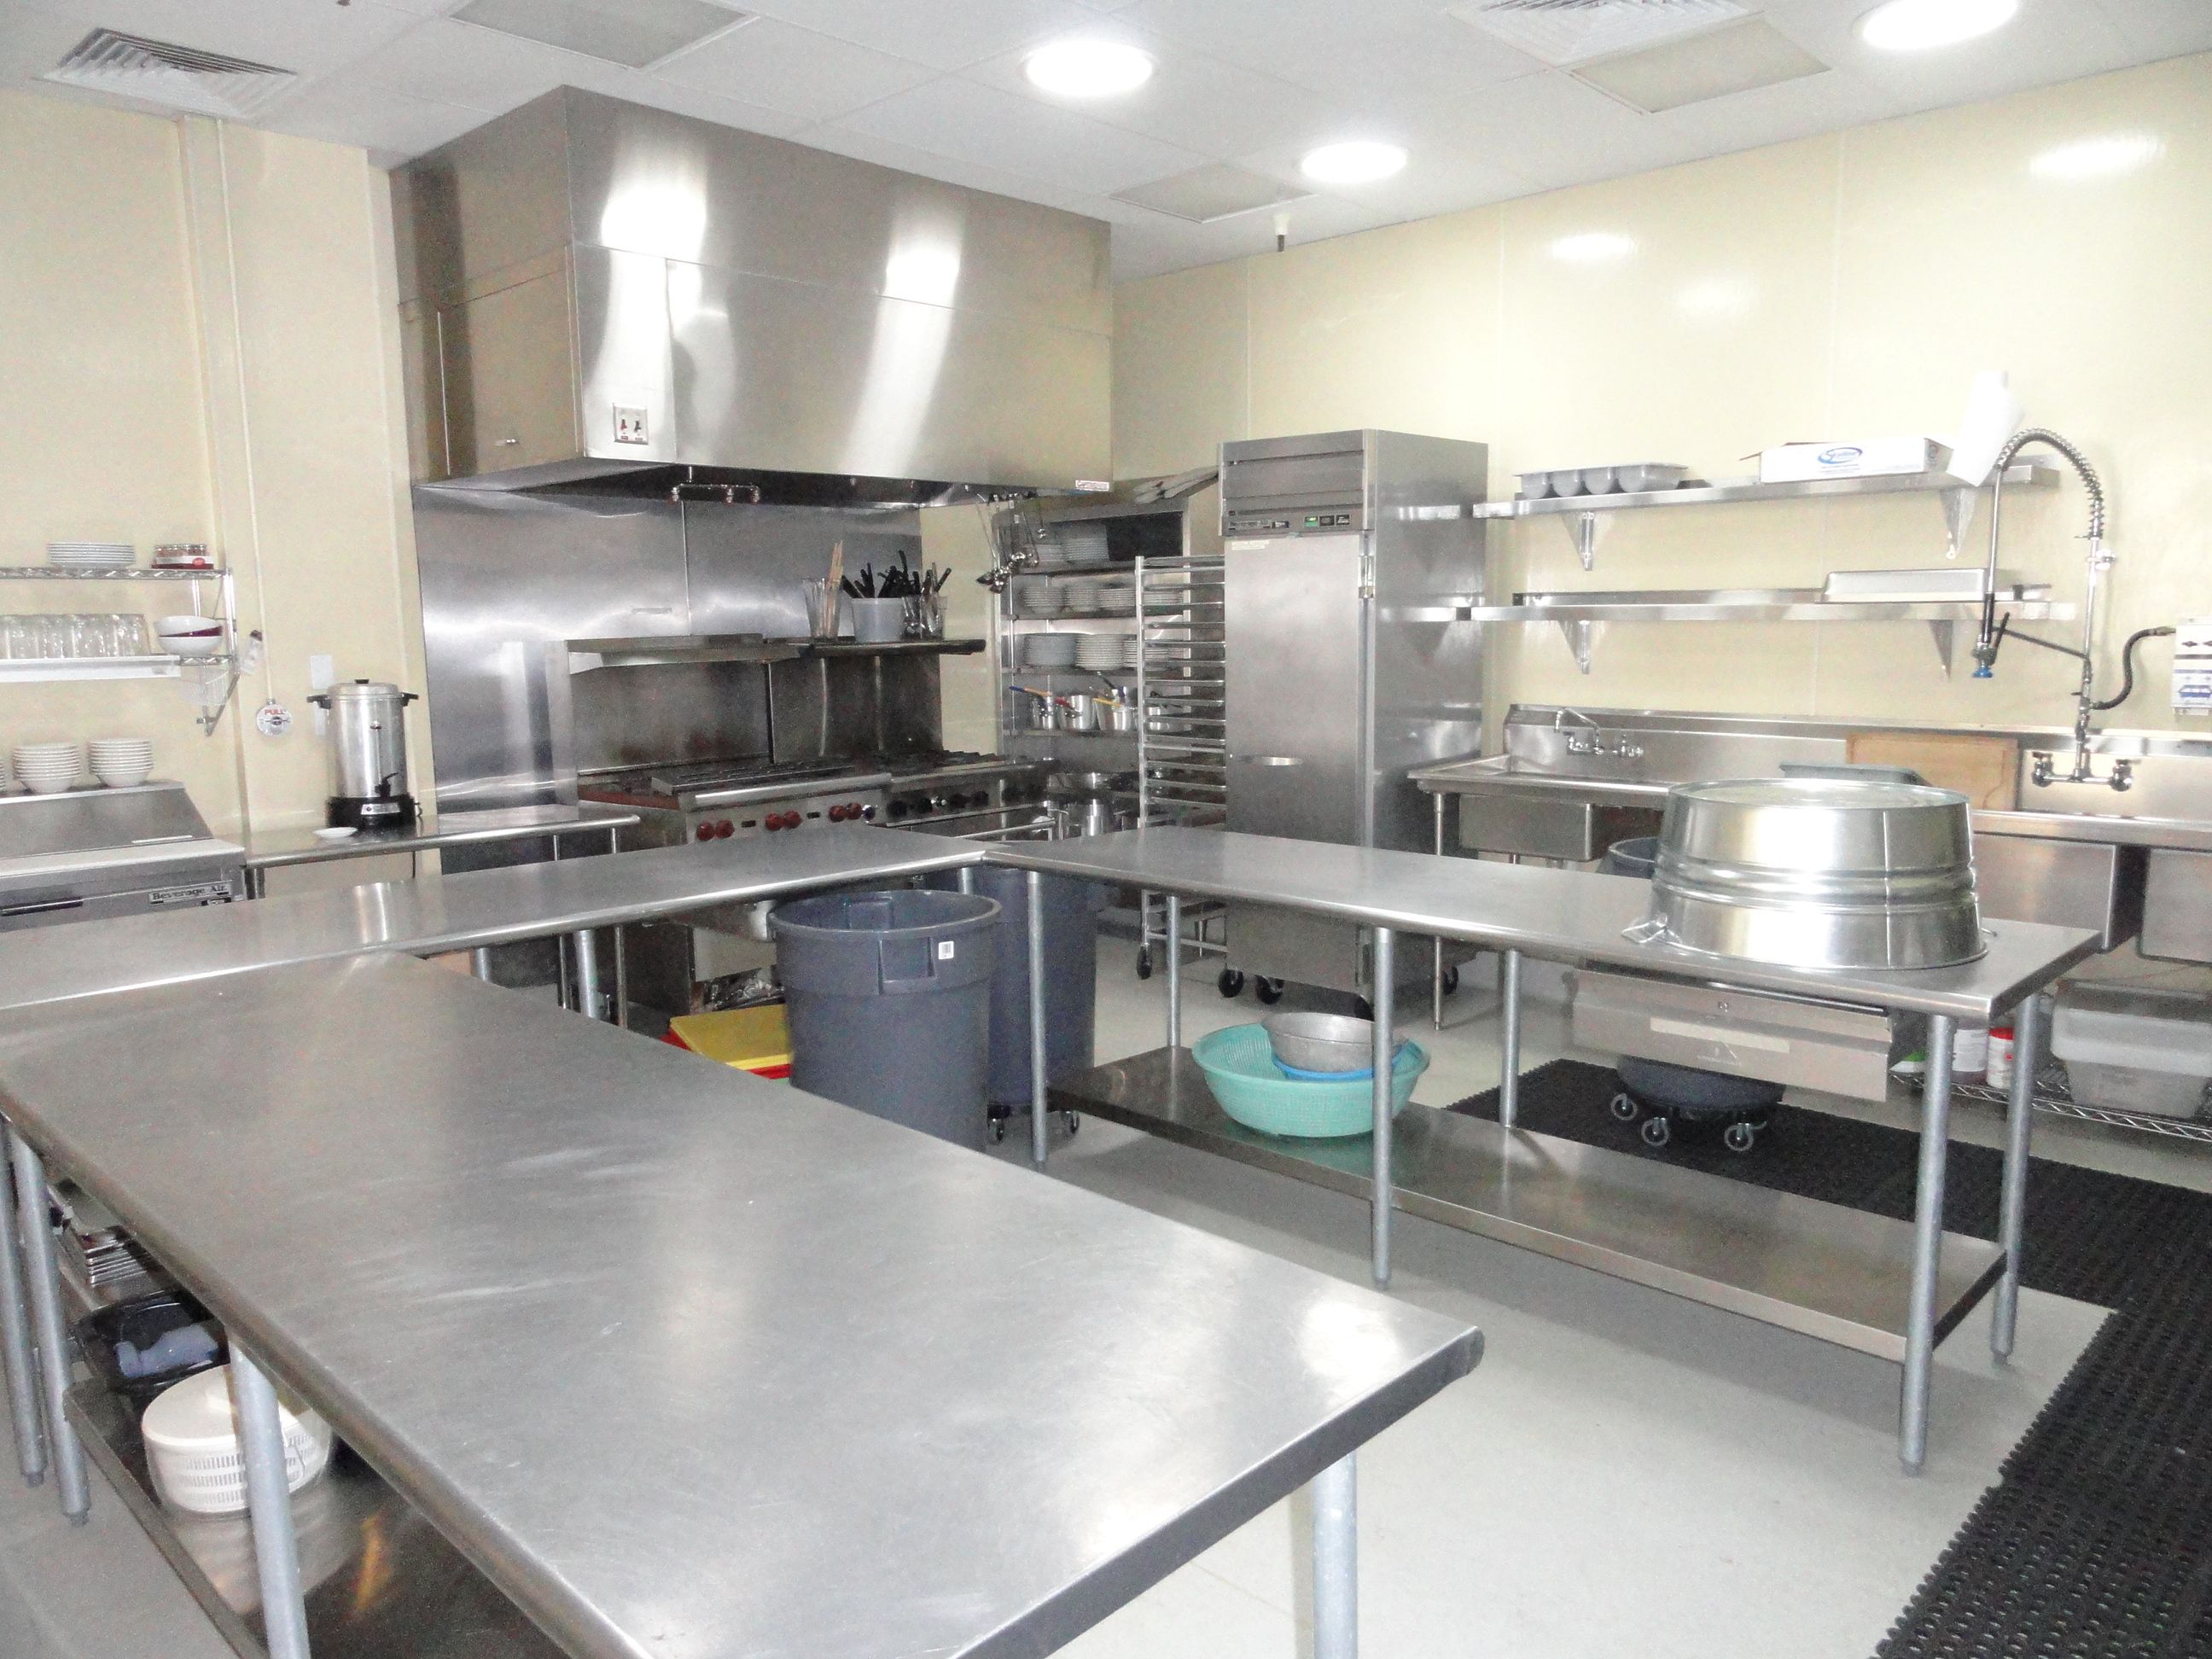 Kitchen/simple restaurant kitchen layout - 12 Excellent Small Commercial Kitchen Equipment Digital Picture Ideas